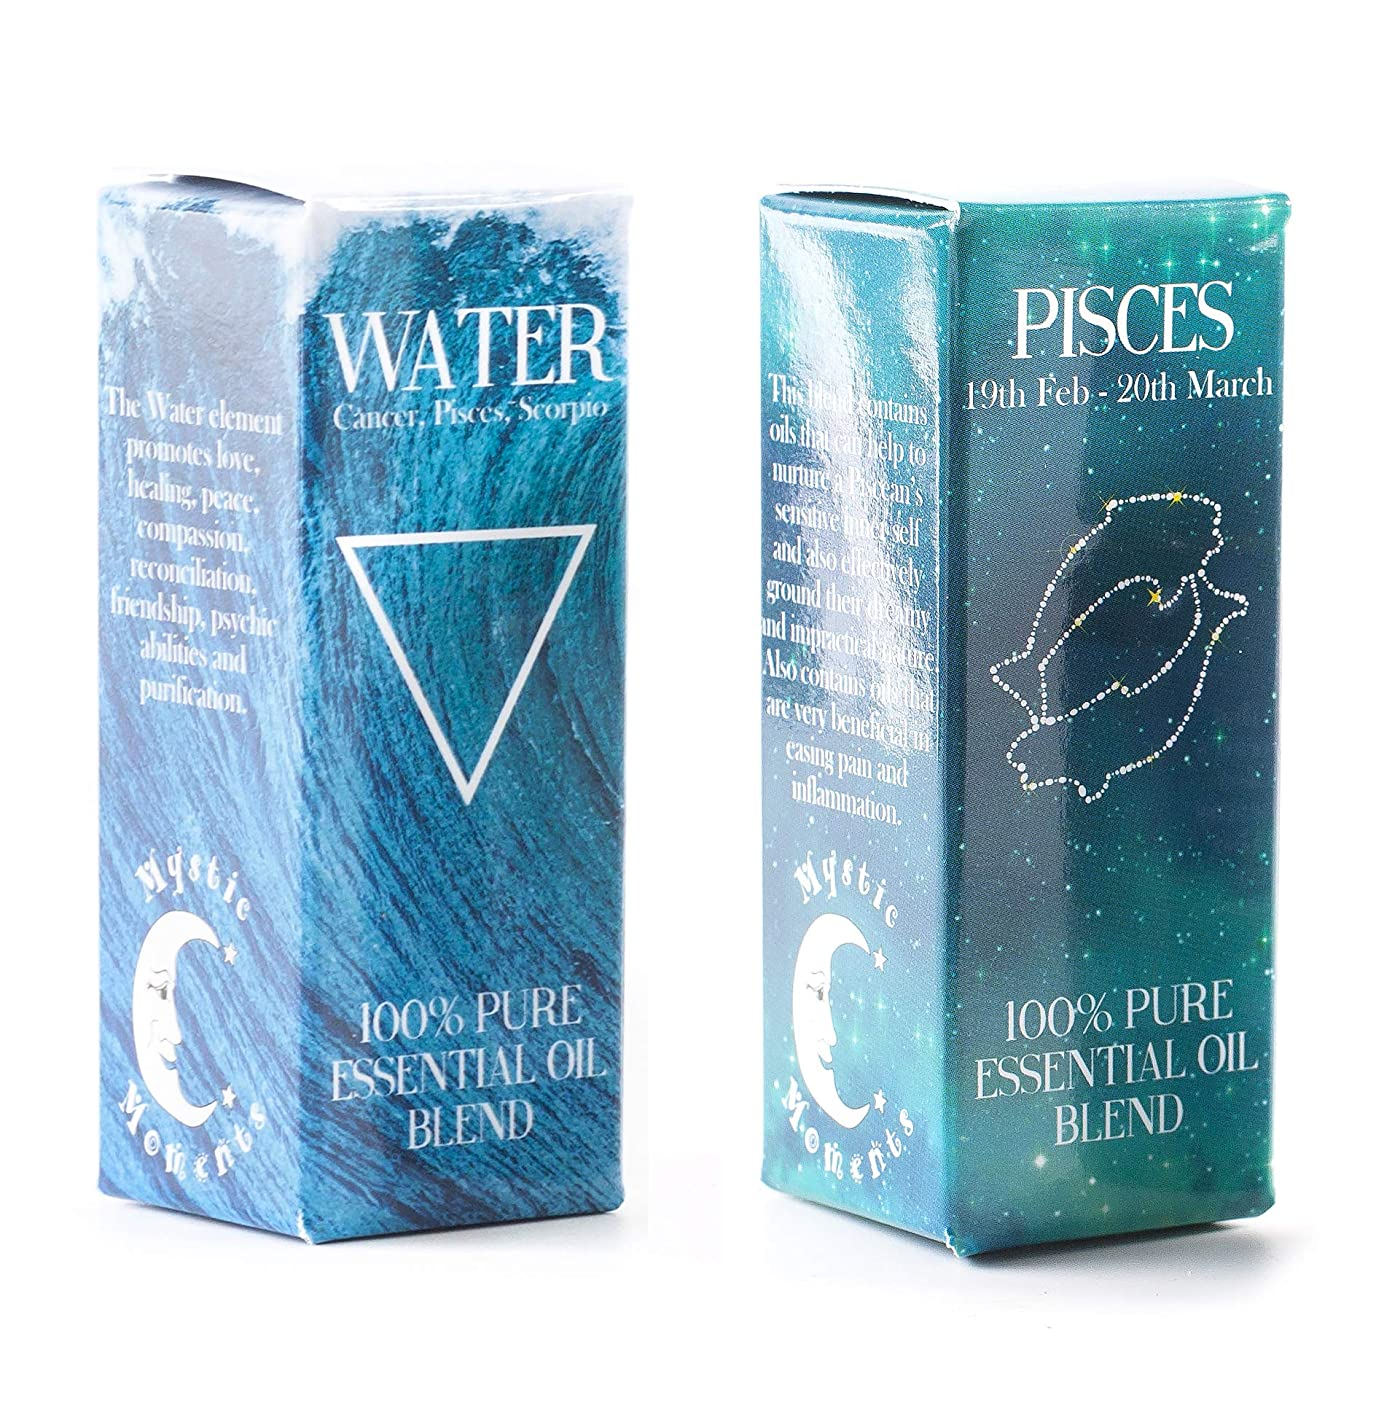 フレームワーク繊細臨検Mystic Moments | Water Element & Pisces Zodiac Sign Astrology Essential Oil Blend Twin Pack (2x10ml)